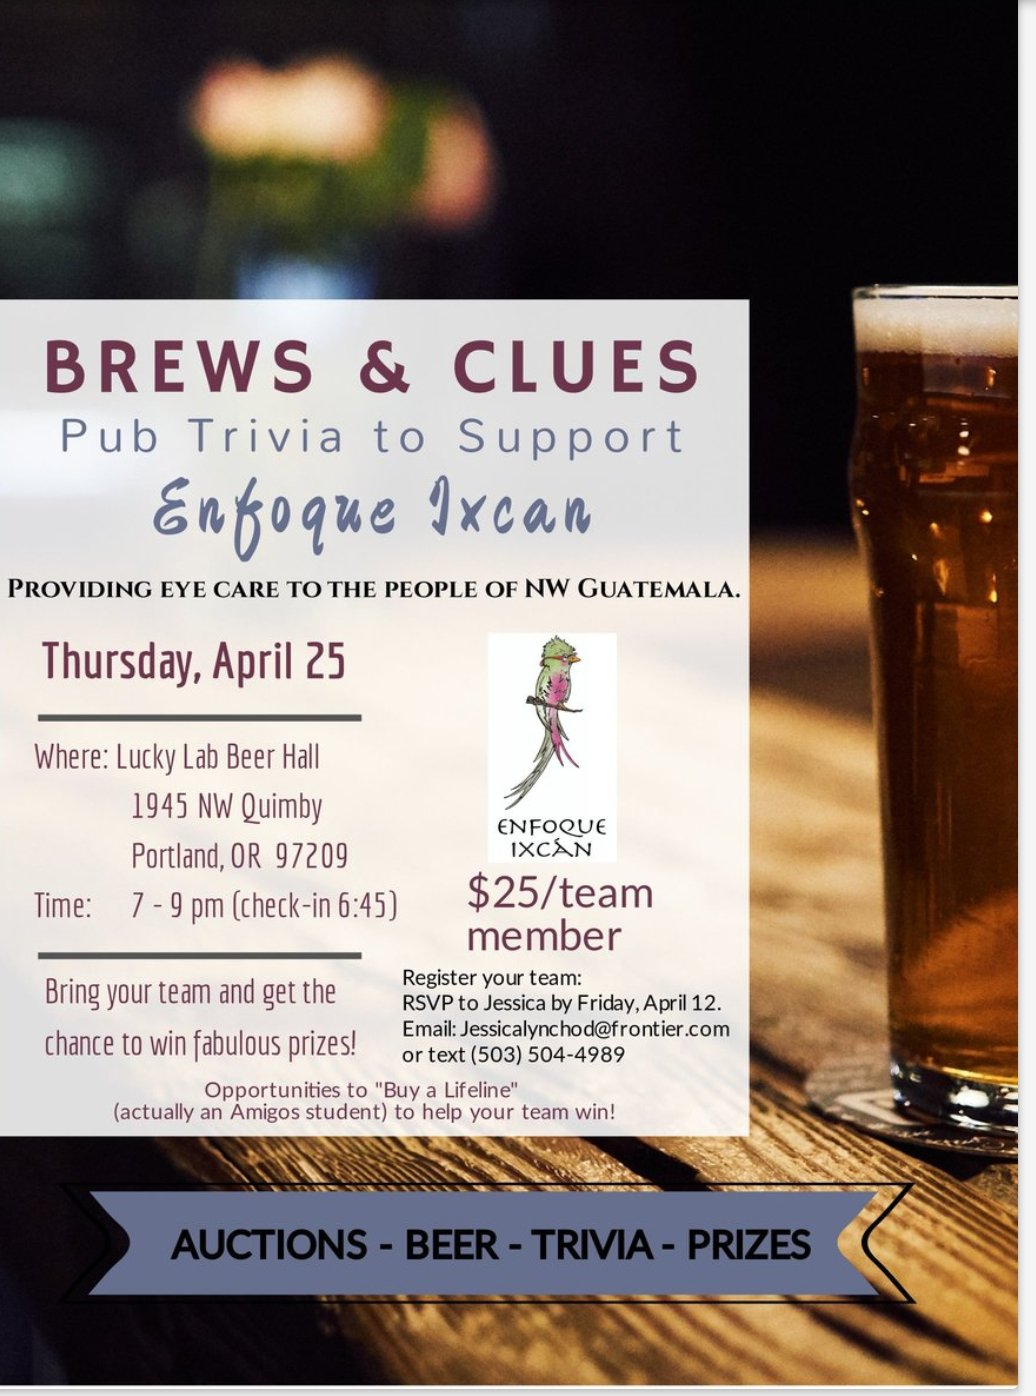 BREWS & CLUES Pub Trivia to Support Enfoque Ixcan providing eye care to the people of NW Guatemala. WHEN: Thursday, April 25 7-9 pm (check-in 6:45 pm) WHERE: Lucky Lab Beer Hall 1945 NW Quimby Portland, OR 97209 COST: $25/team member REGISTER YOUR TEAM: RSVP to Jessica by Friday, April 12 Email: JessicaLynchOD@frontier.com by Text: to 503-504-4989 Bring your team and get a chance to win fabulous prizes! Opportunities to 'Buy a Lifeline' (actually an Amigos student) to help your team win! AUCTIONS - BEER - TRIVIA - PRIZES